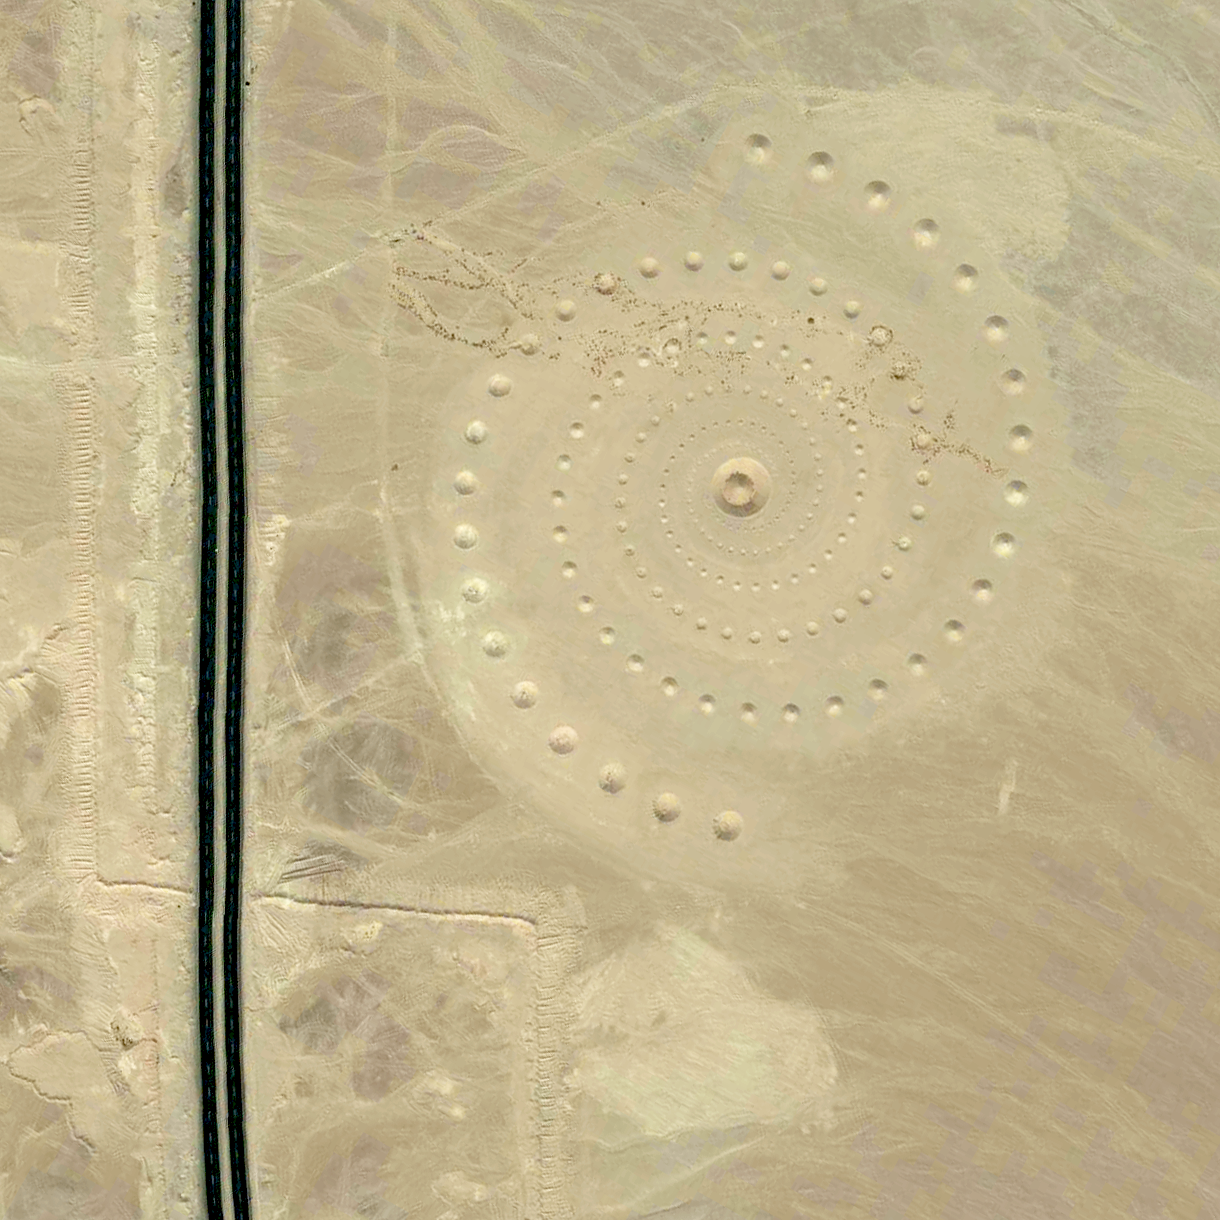 """8/8/2015   Desert Breath   Hurghada, Egypt  27.380541787°, 33.634132451°    """"Desert Breath"""" - located in the Egyptian desert near Hurghada on the Red Sea - is a double-spiral art piece. Because the 89 protruding cones that make up one spiral are constructed from the sand that was dug to create the 89 depressed cones of the other spiral, in due time, with erosion, the area of approximately one million square feet will revert back to its original state."""